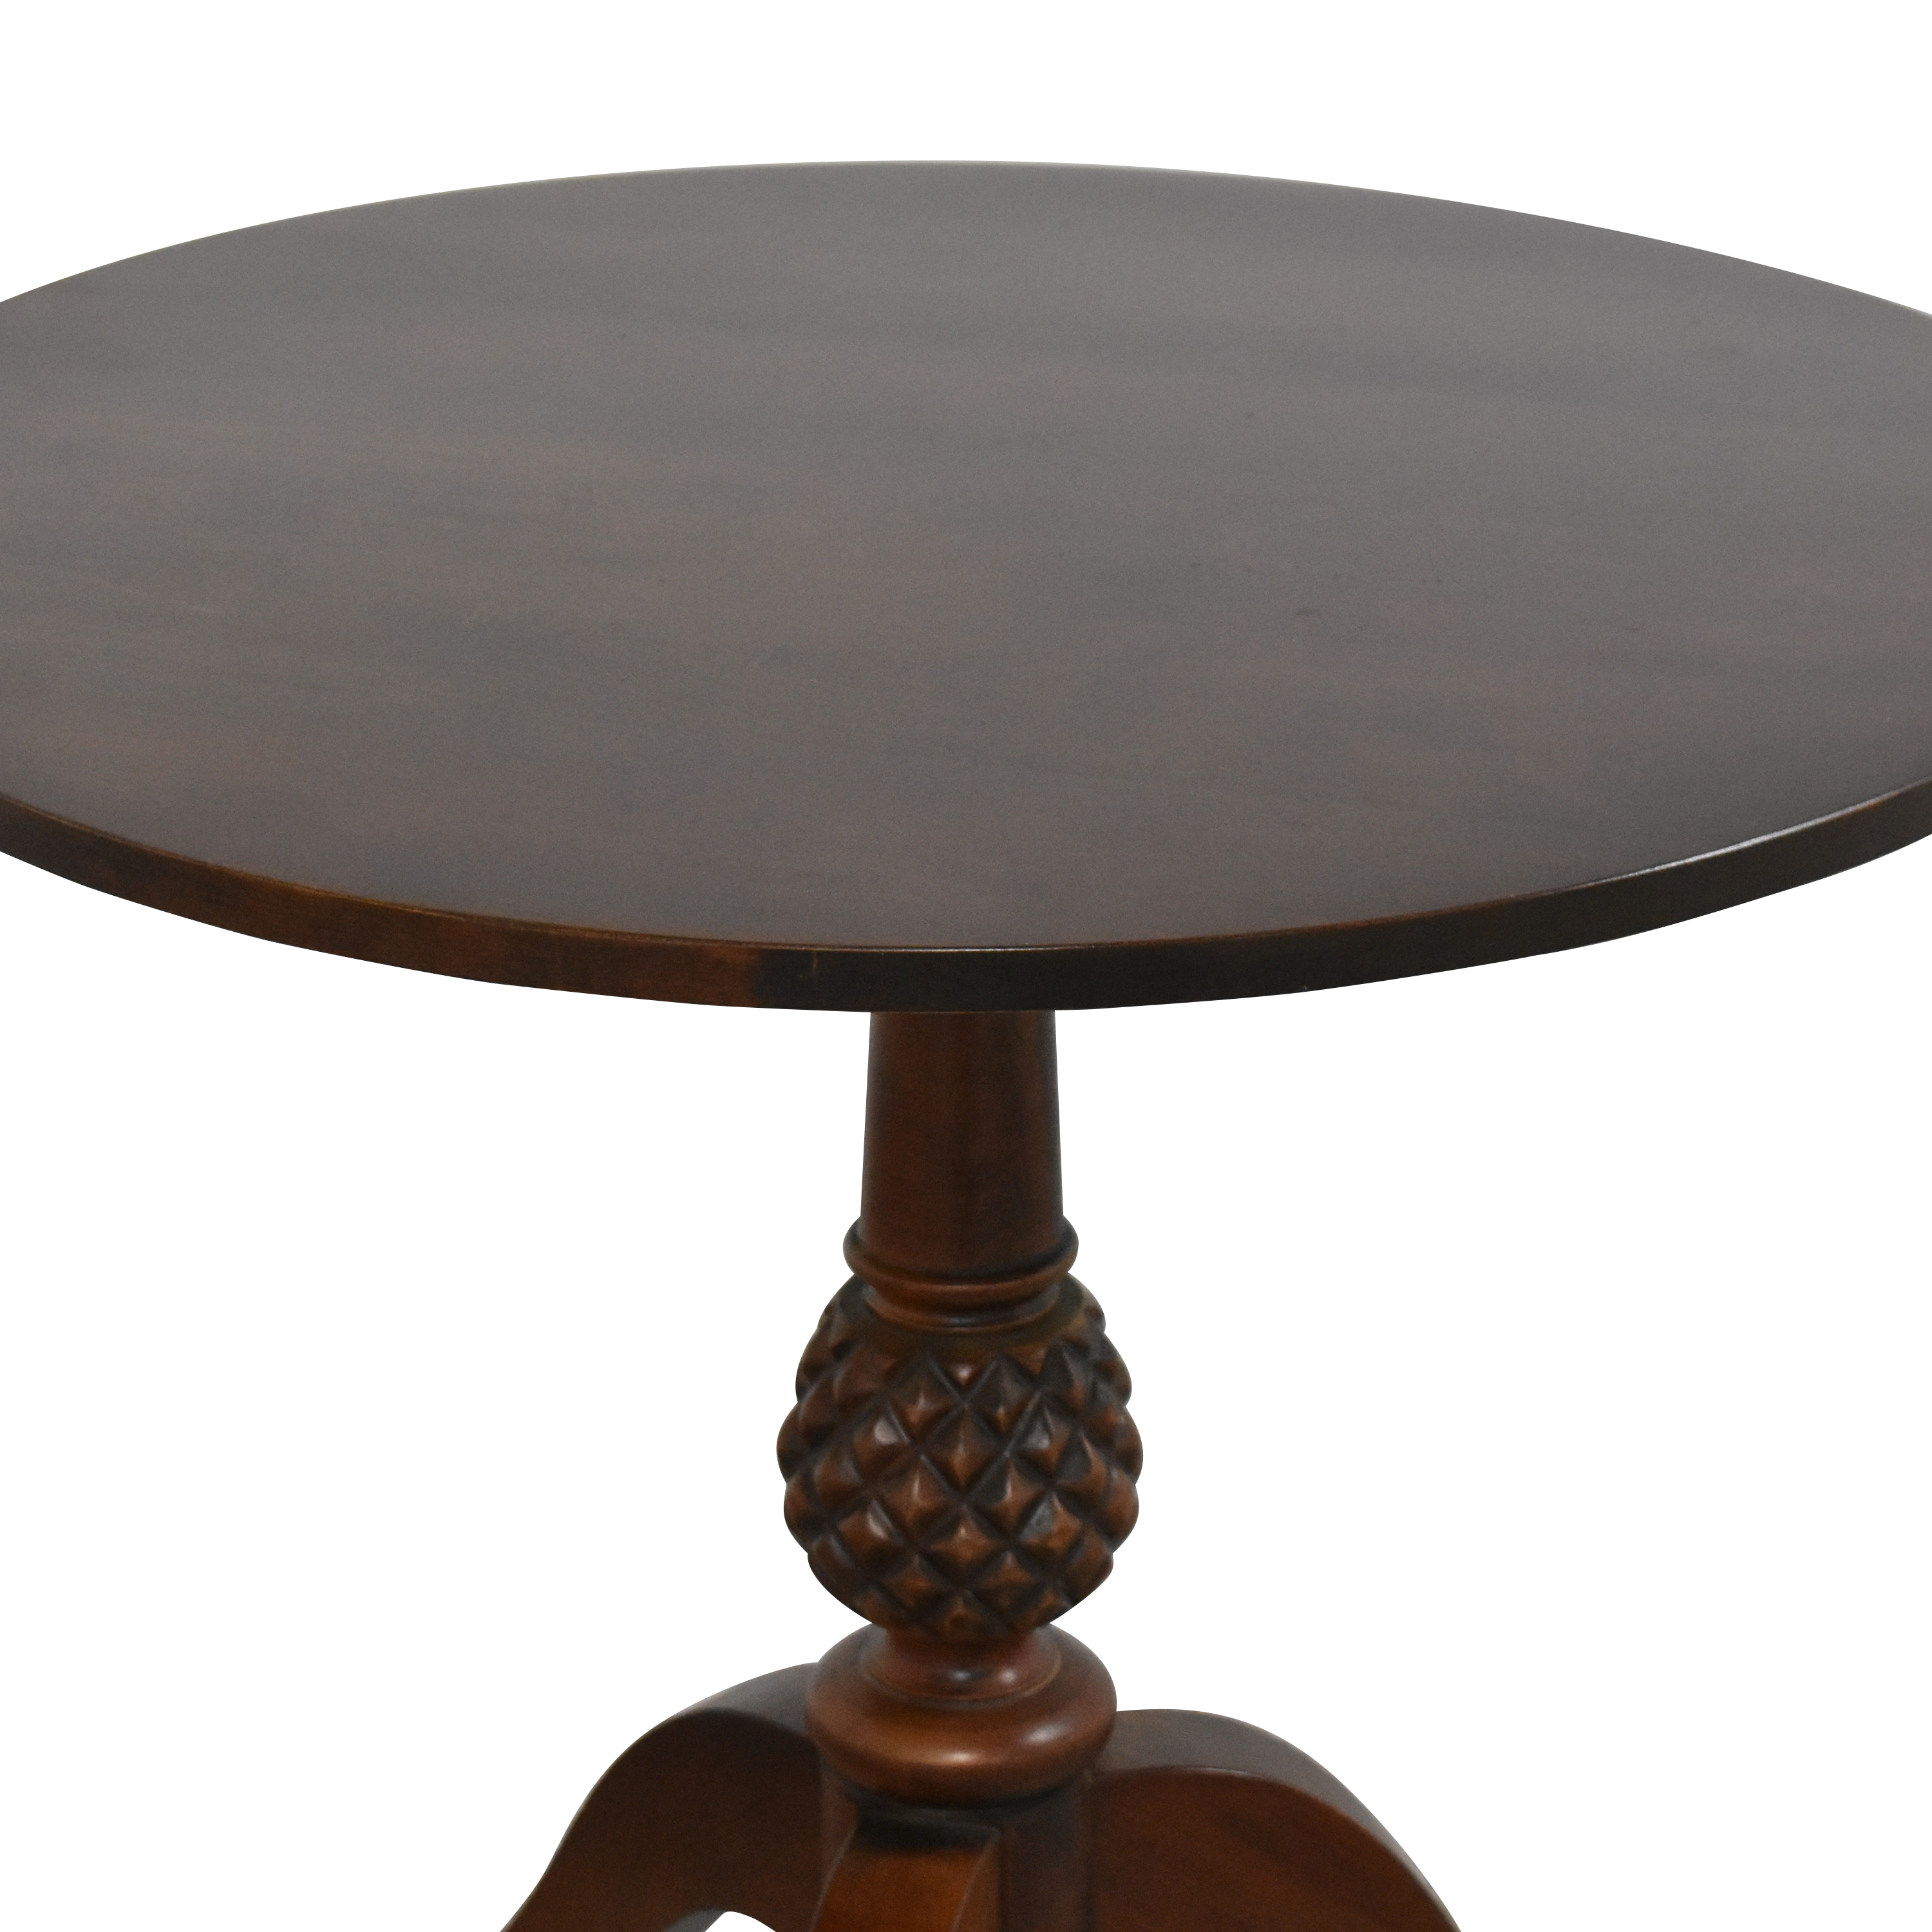 Ethan Allen Ethan Allen Old World Treasures Accent Table coupon